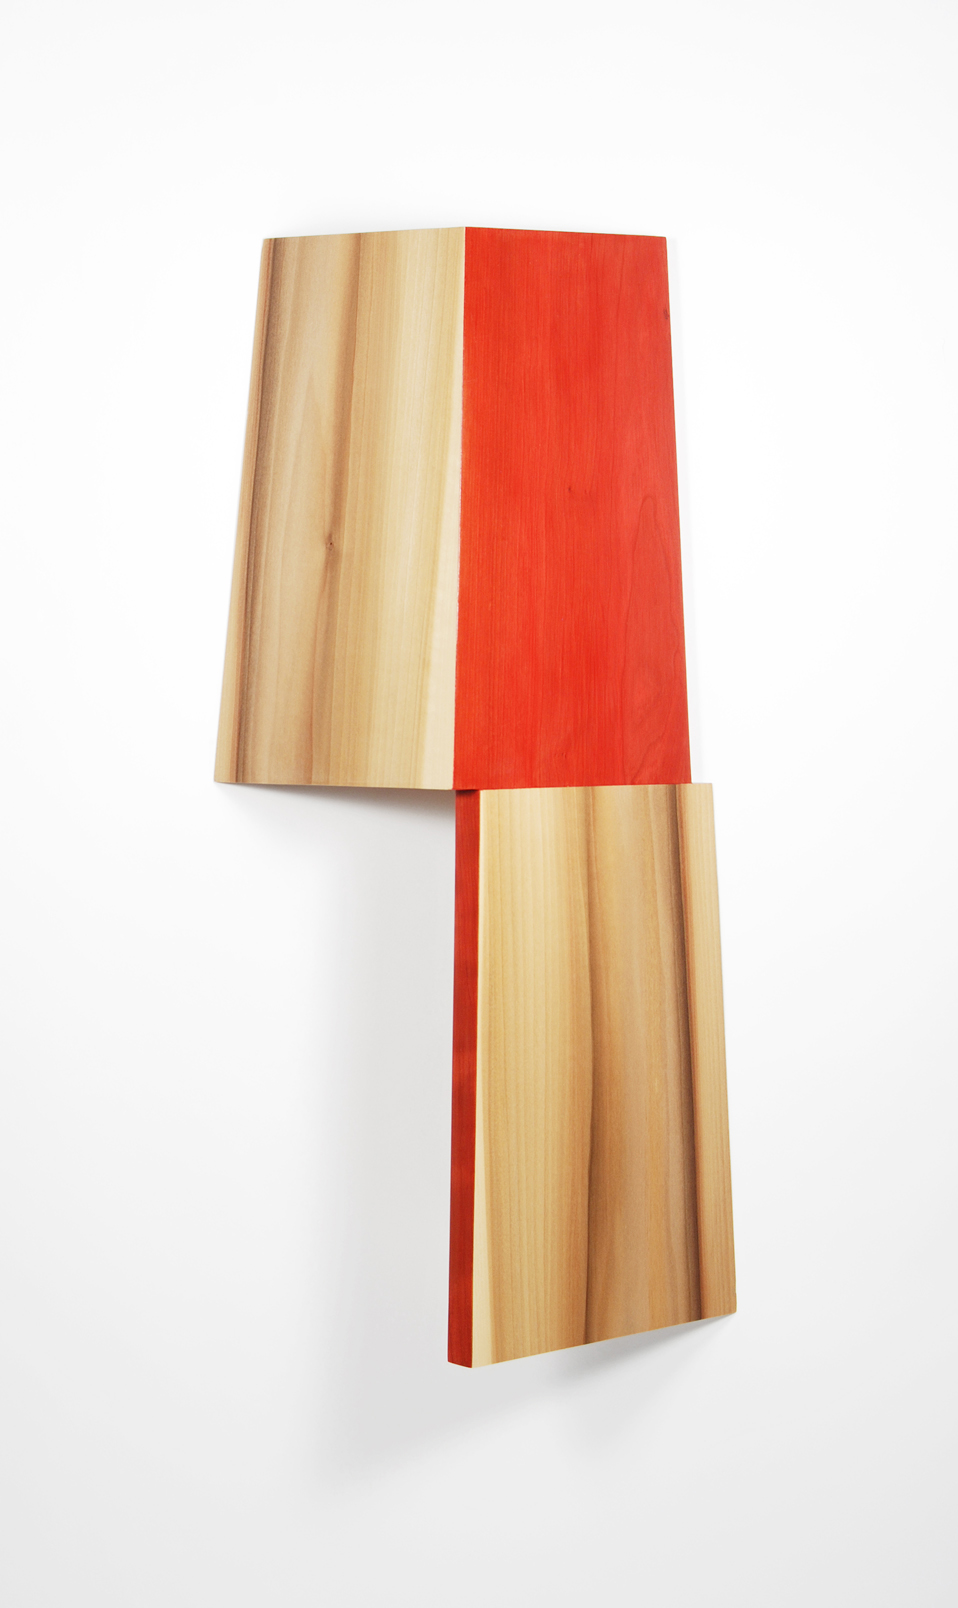 Richard Bottwin     Right Angle.3    2018  Cherry wood, poplar, and acrylic paint  Signed by the artist,  verso   24 x 11.5 x 6 inches